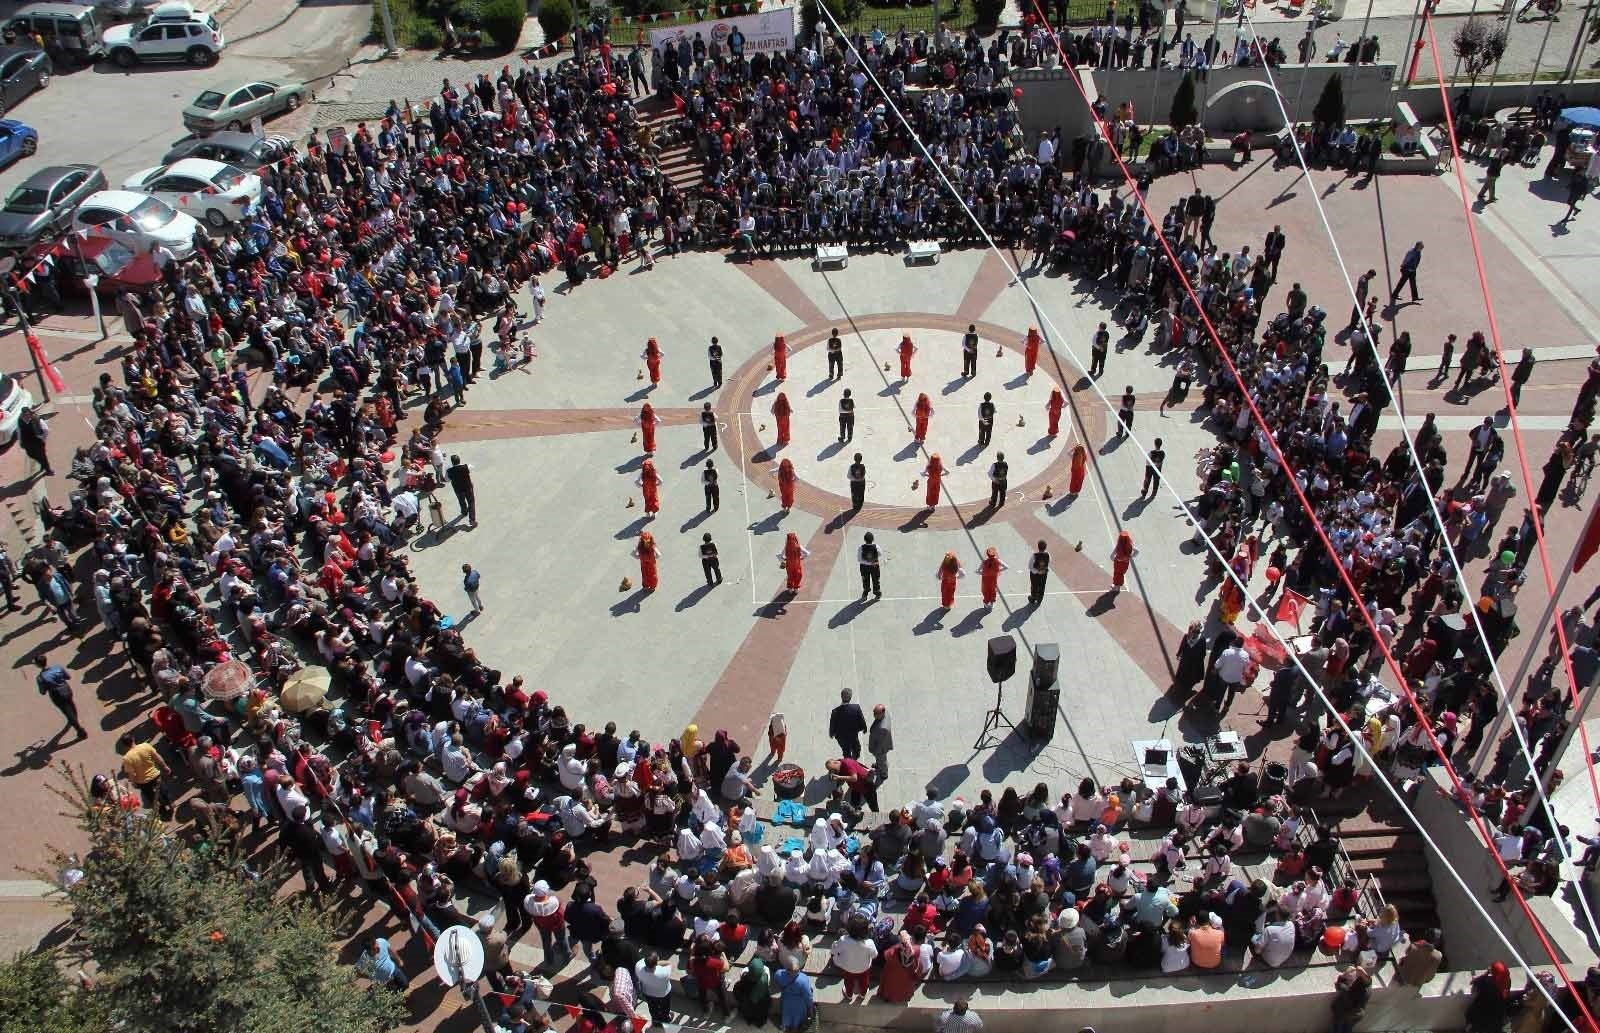 Millions of children throughout Turkey mark National Sovereignty and Children's Day with dances and celebrations